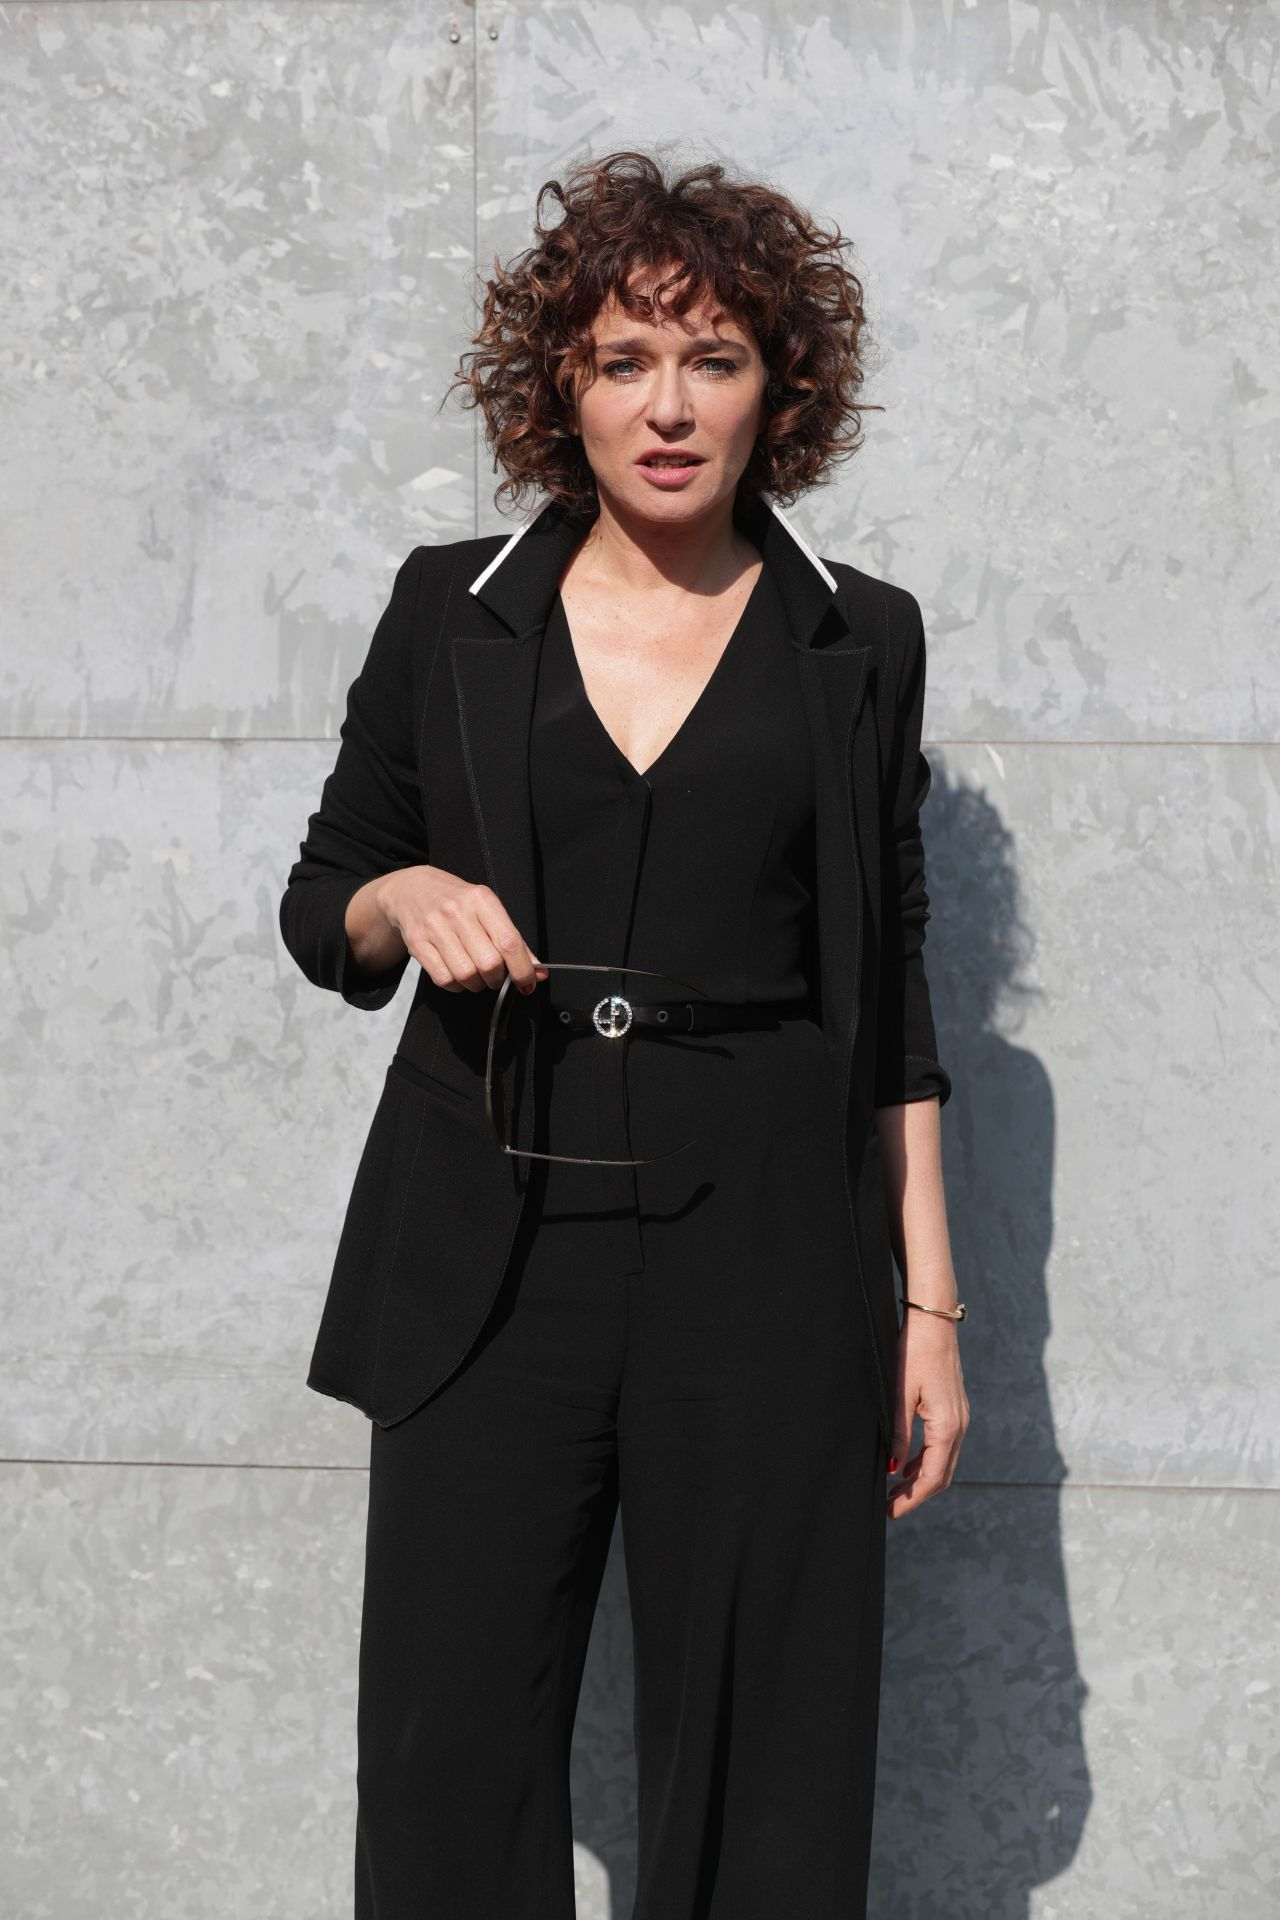 valeria golino - photo #16